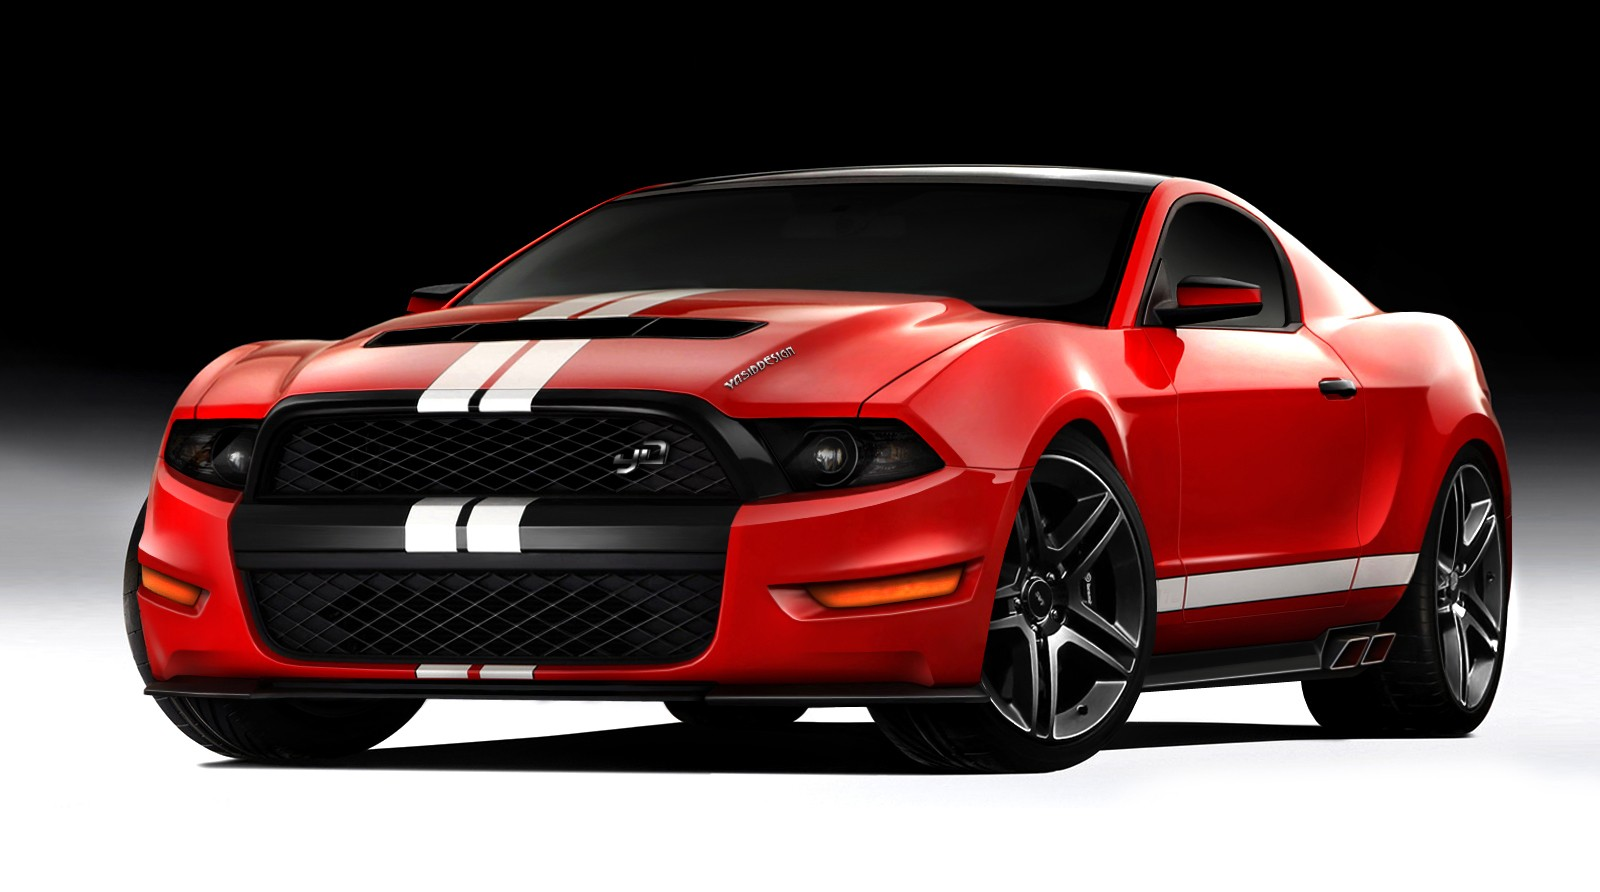 Ford Mustang GT Brand New Model 2014 Wallpapers Universe 1600x892